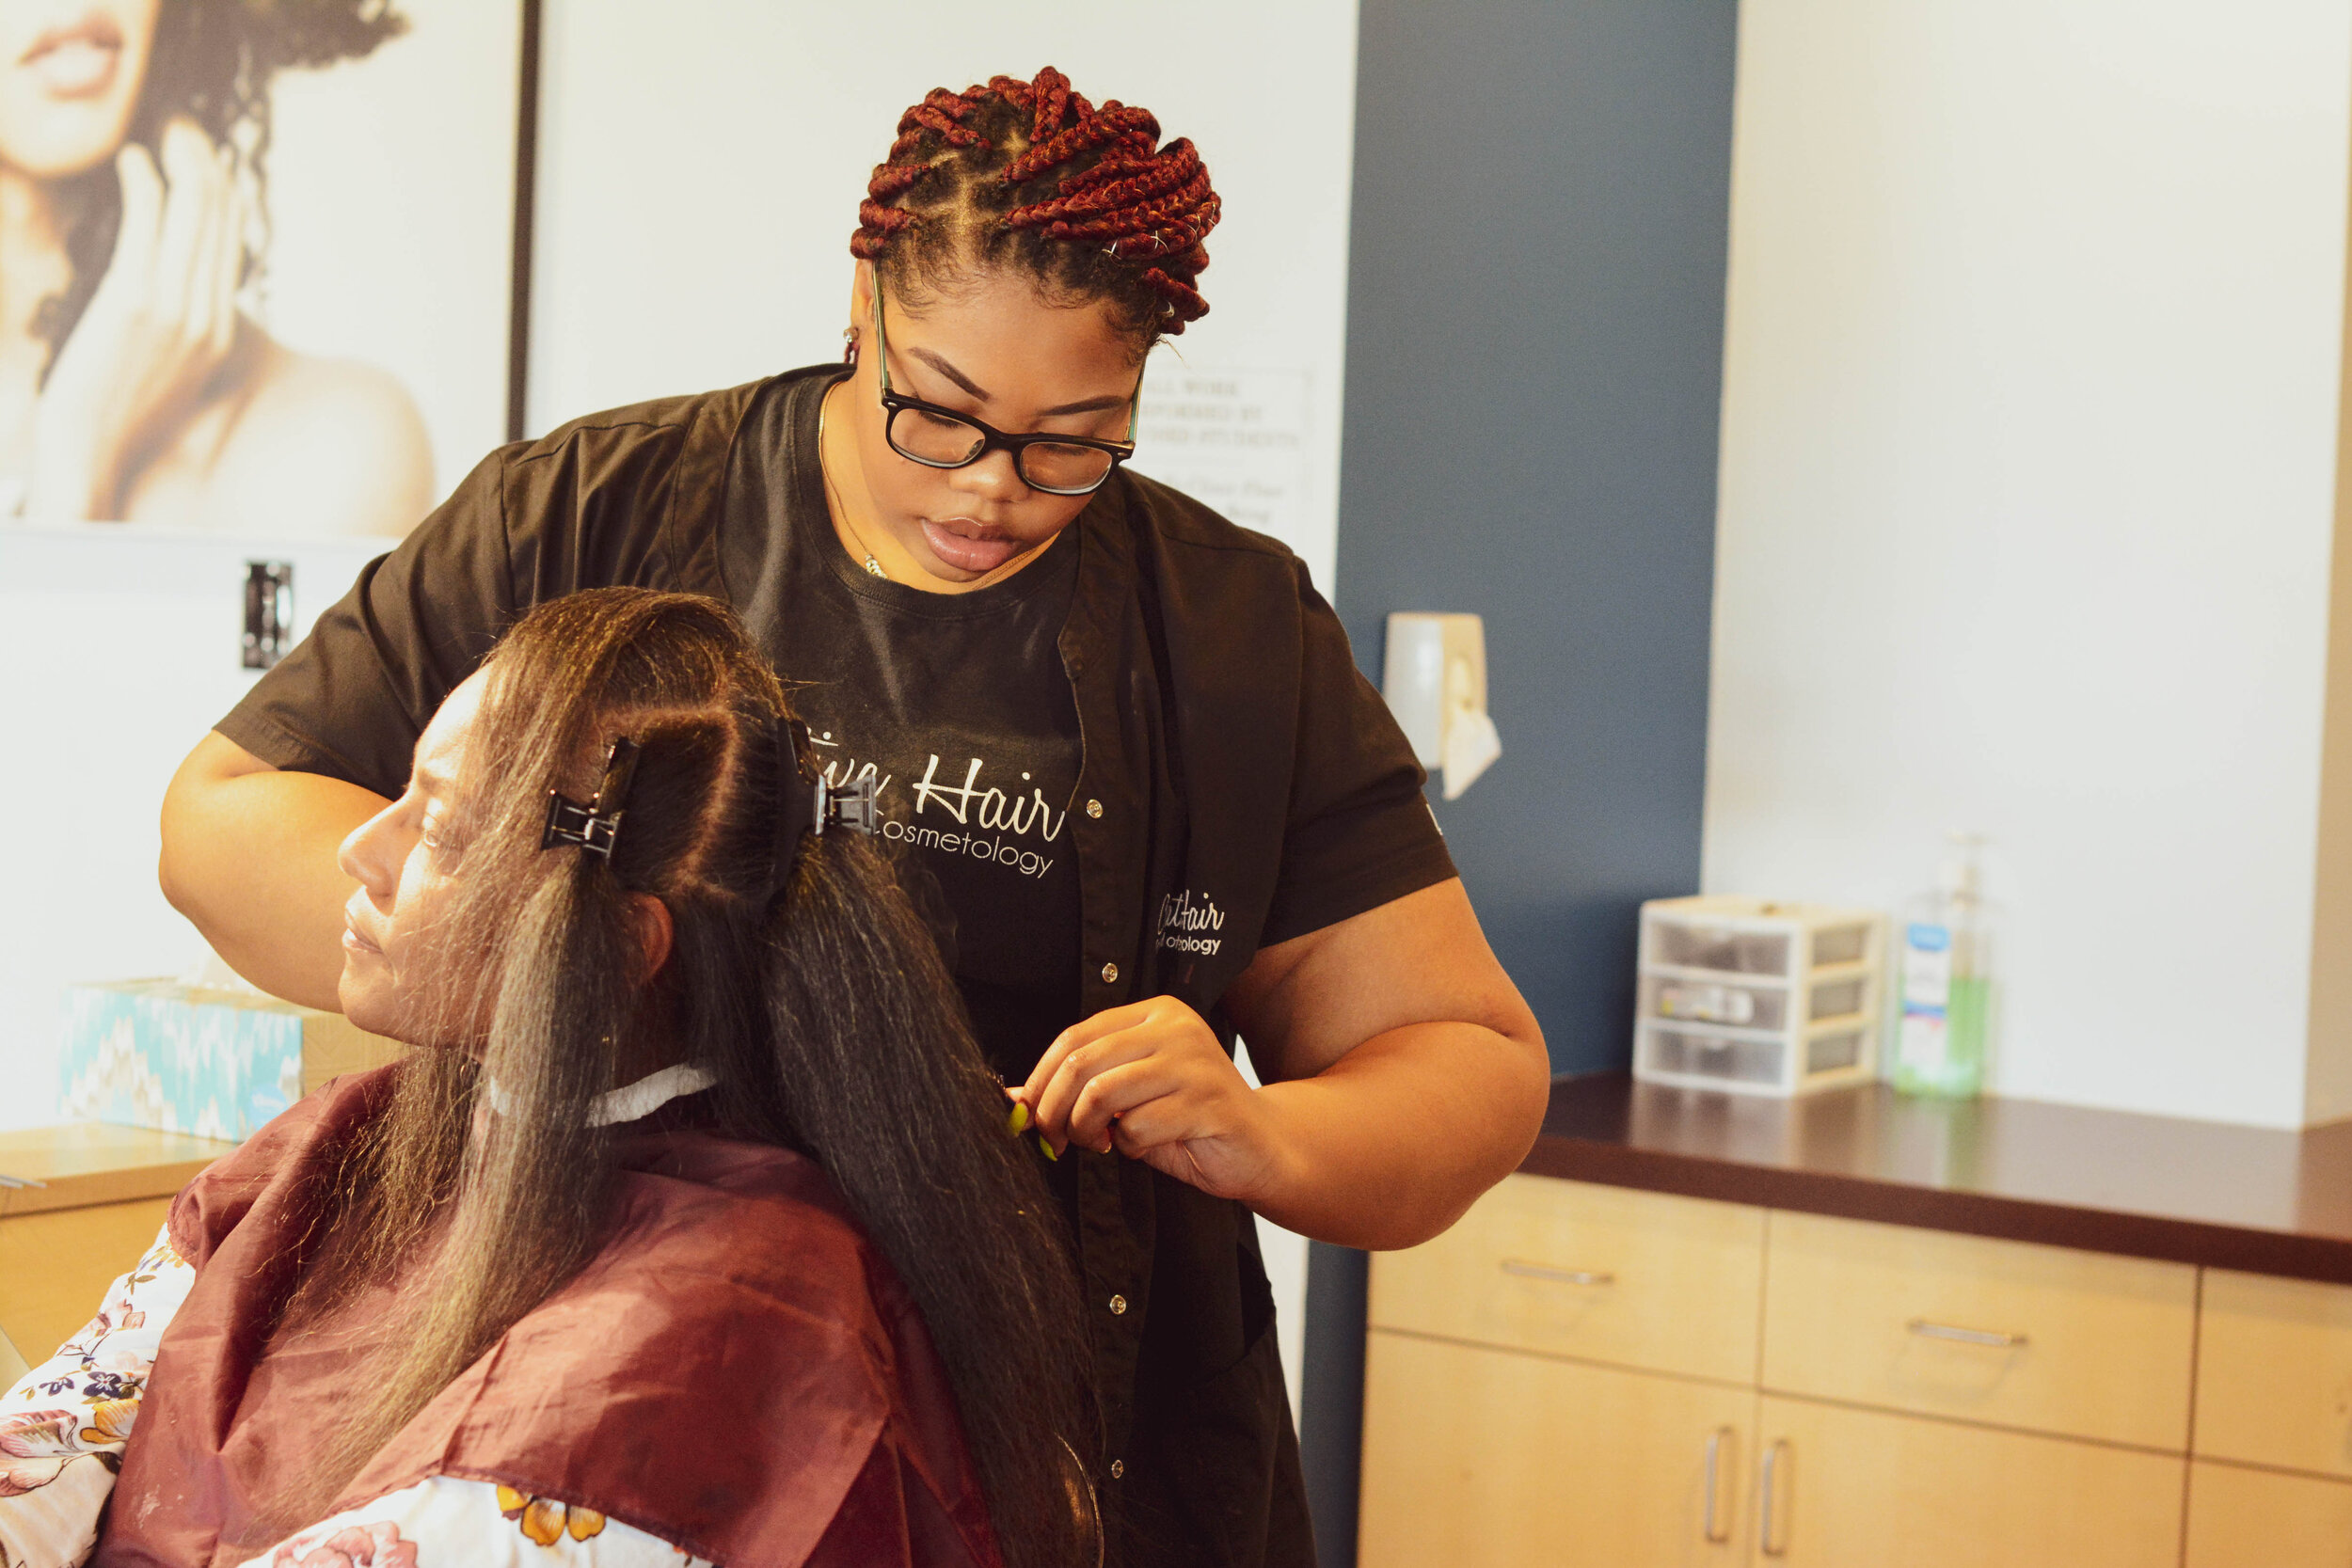 CLIENT SERVICES - New student salon hours for October!We value our clients & take pride in offering quality services at an affordable price. see our list of services, prices & products for all your hair care needs.